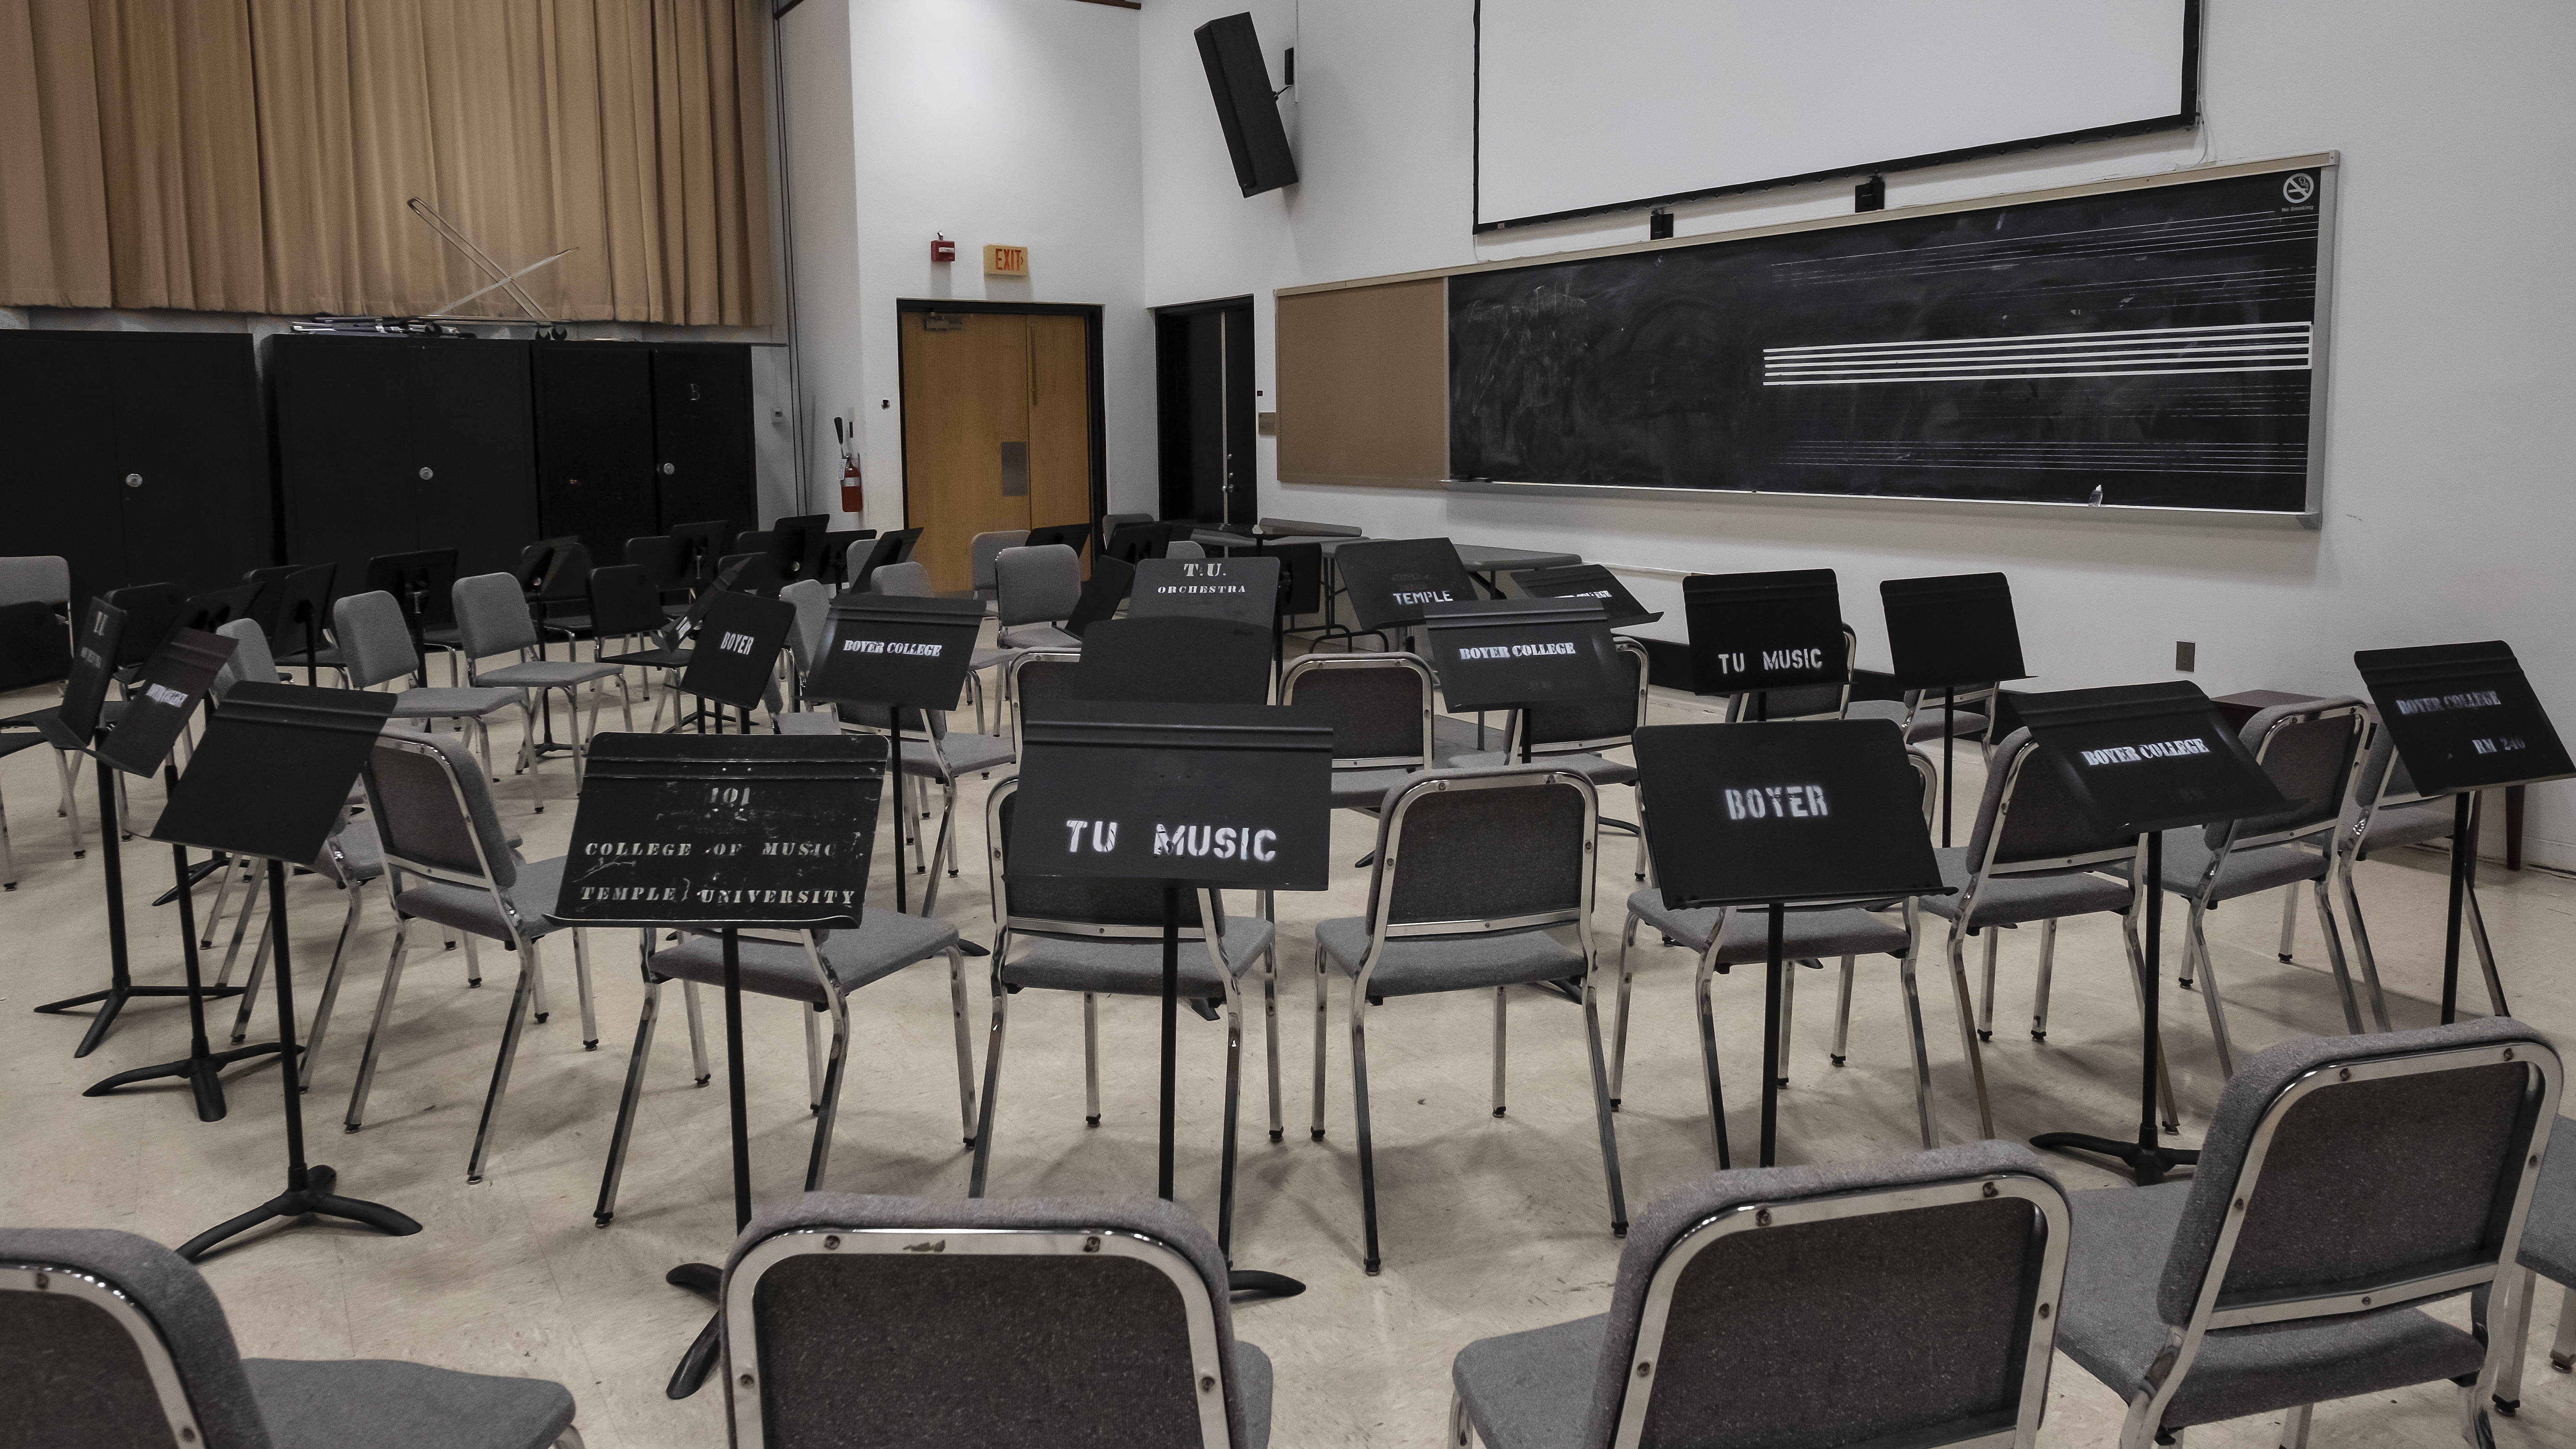 Three rows of chairs in a semicircle, facing podium and chalkboard